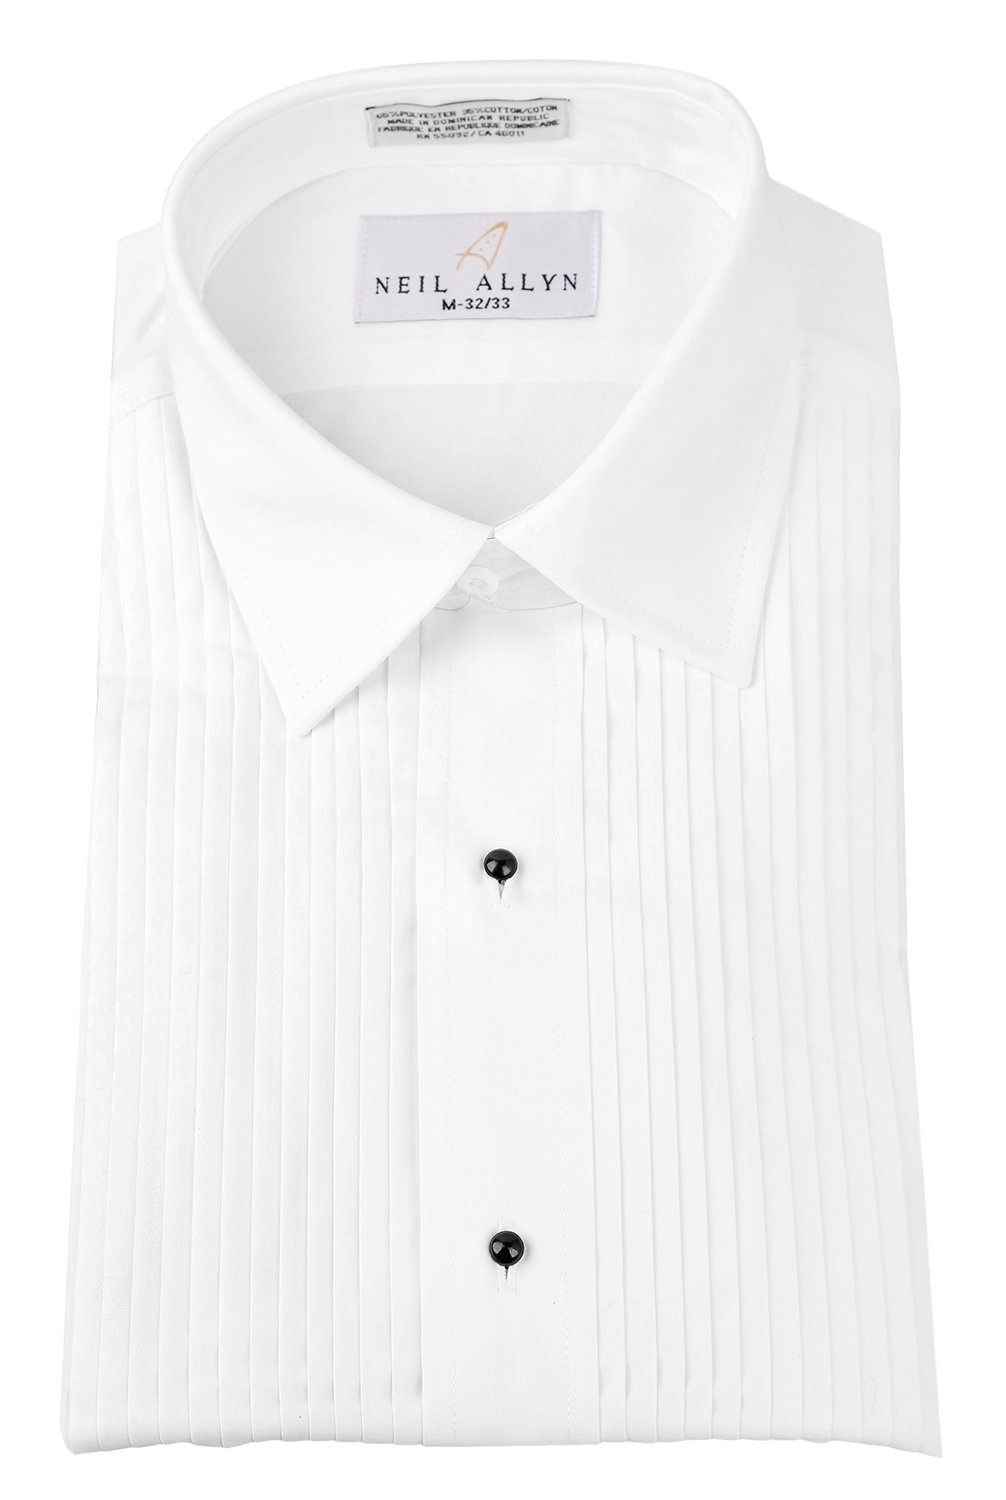 Neil Allyn 1/4'' Pintuck (Pleat) Laydown Collar Convertible Front and Cuff Shirt,White,X-Large(17 X 34-35)White by Neil Allyn